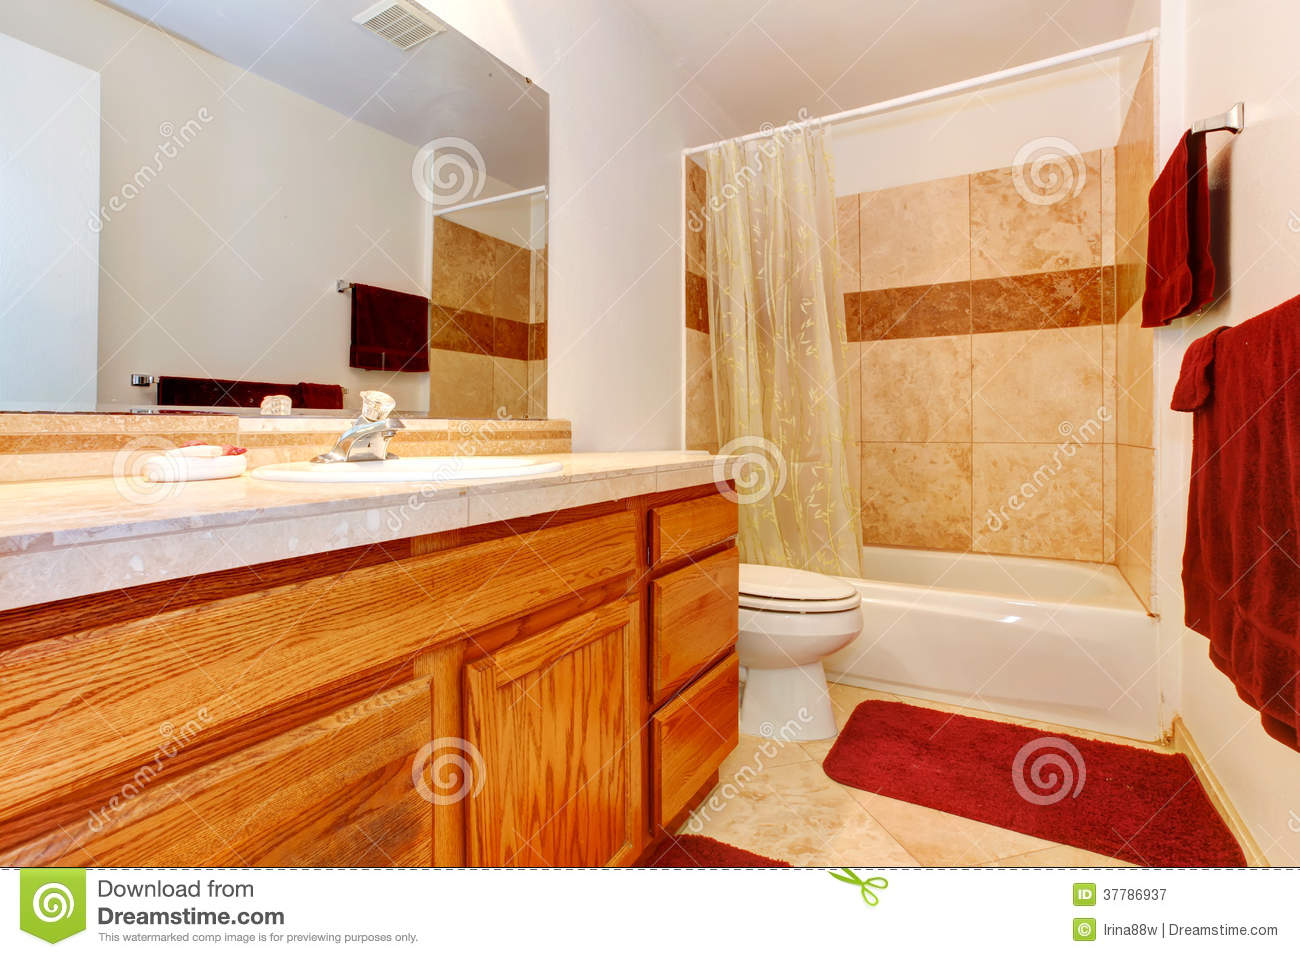 Warm colors bathroom with red towels and rug royalty free for Warm bathroom colors